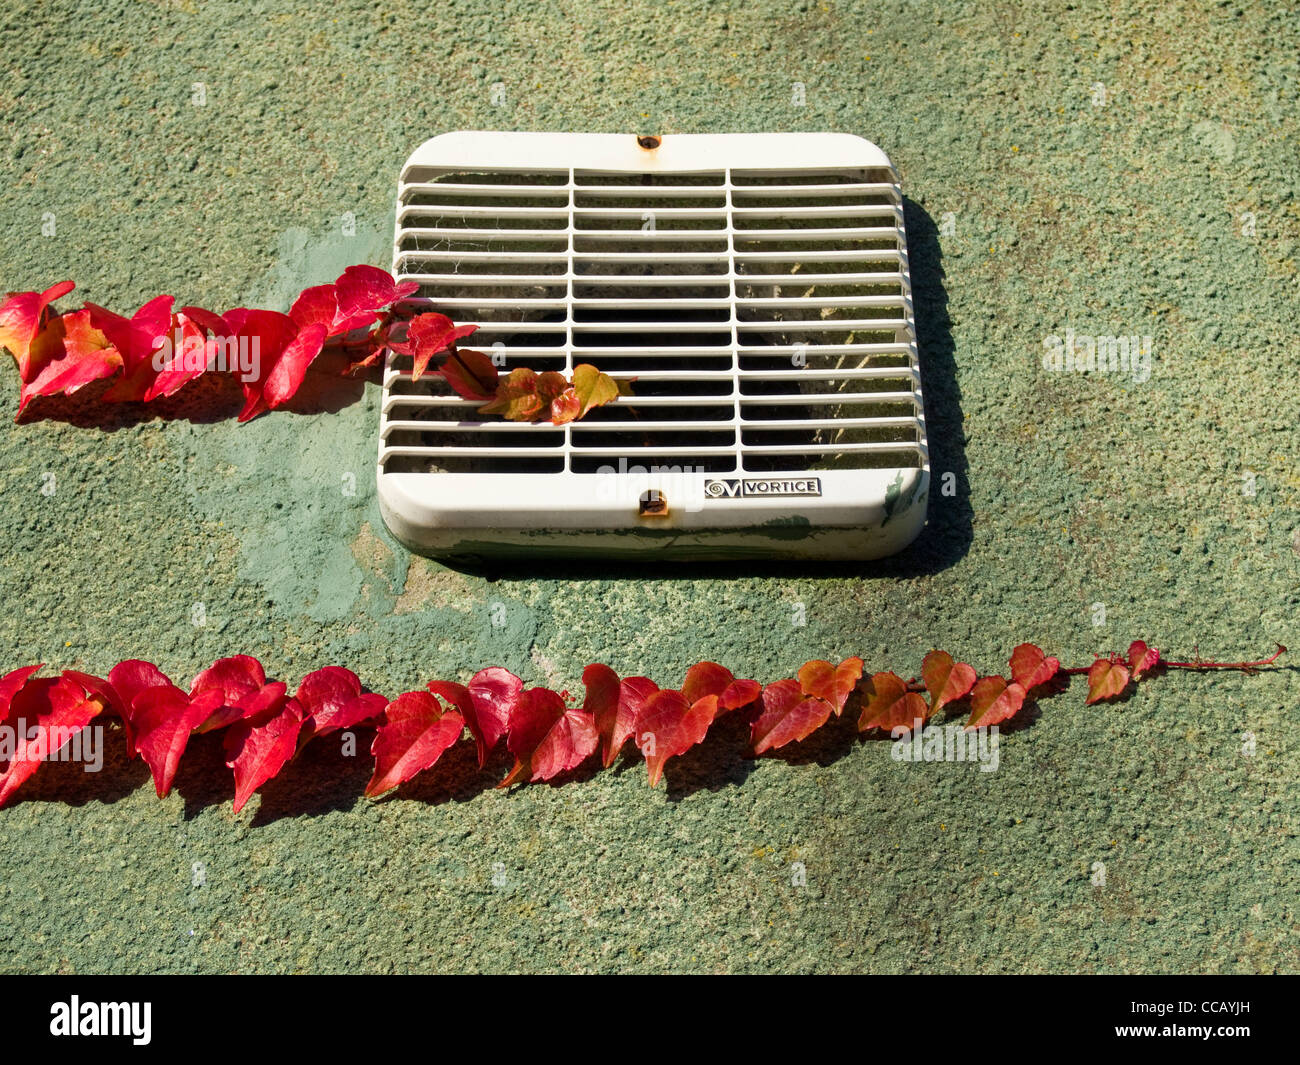 Branches of Virginia creeper in autumnal color moving along a wall and starting to cover an extractor fan outlet - Stock Image